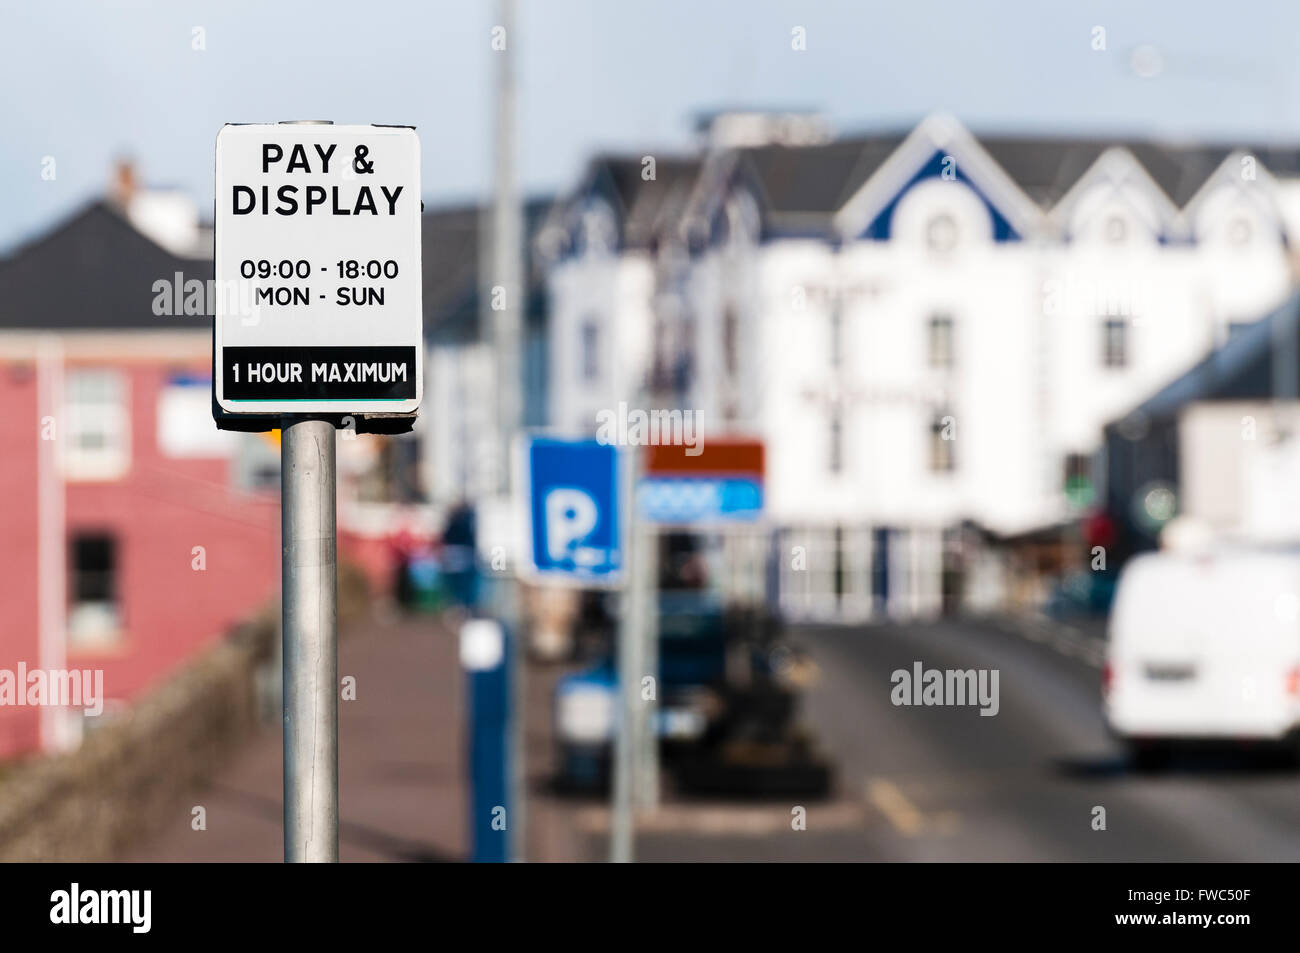 Sign for on-street pay and display car parking, 9am to 6pm, 1 hour maximum. - Stock Image